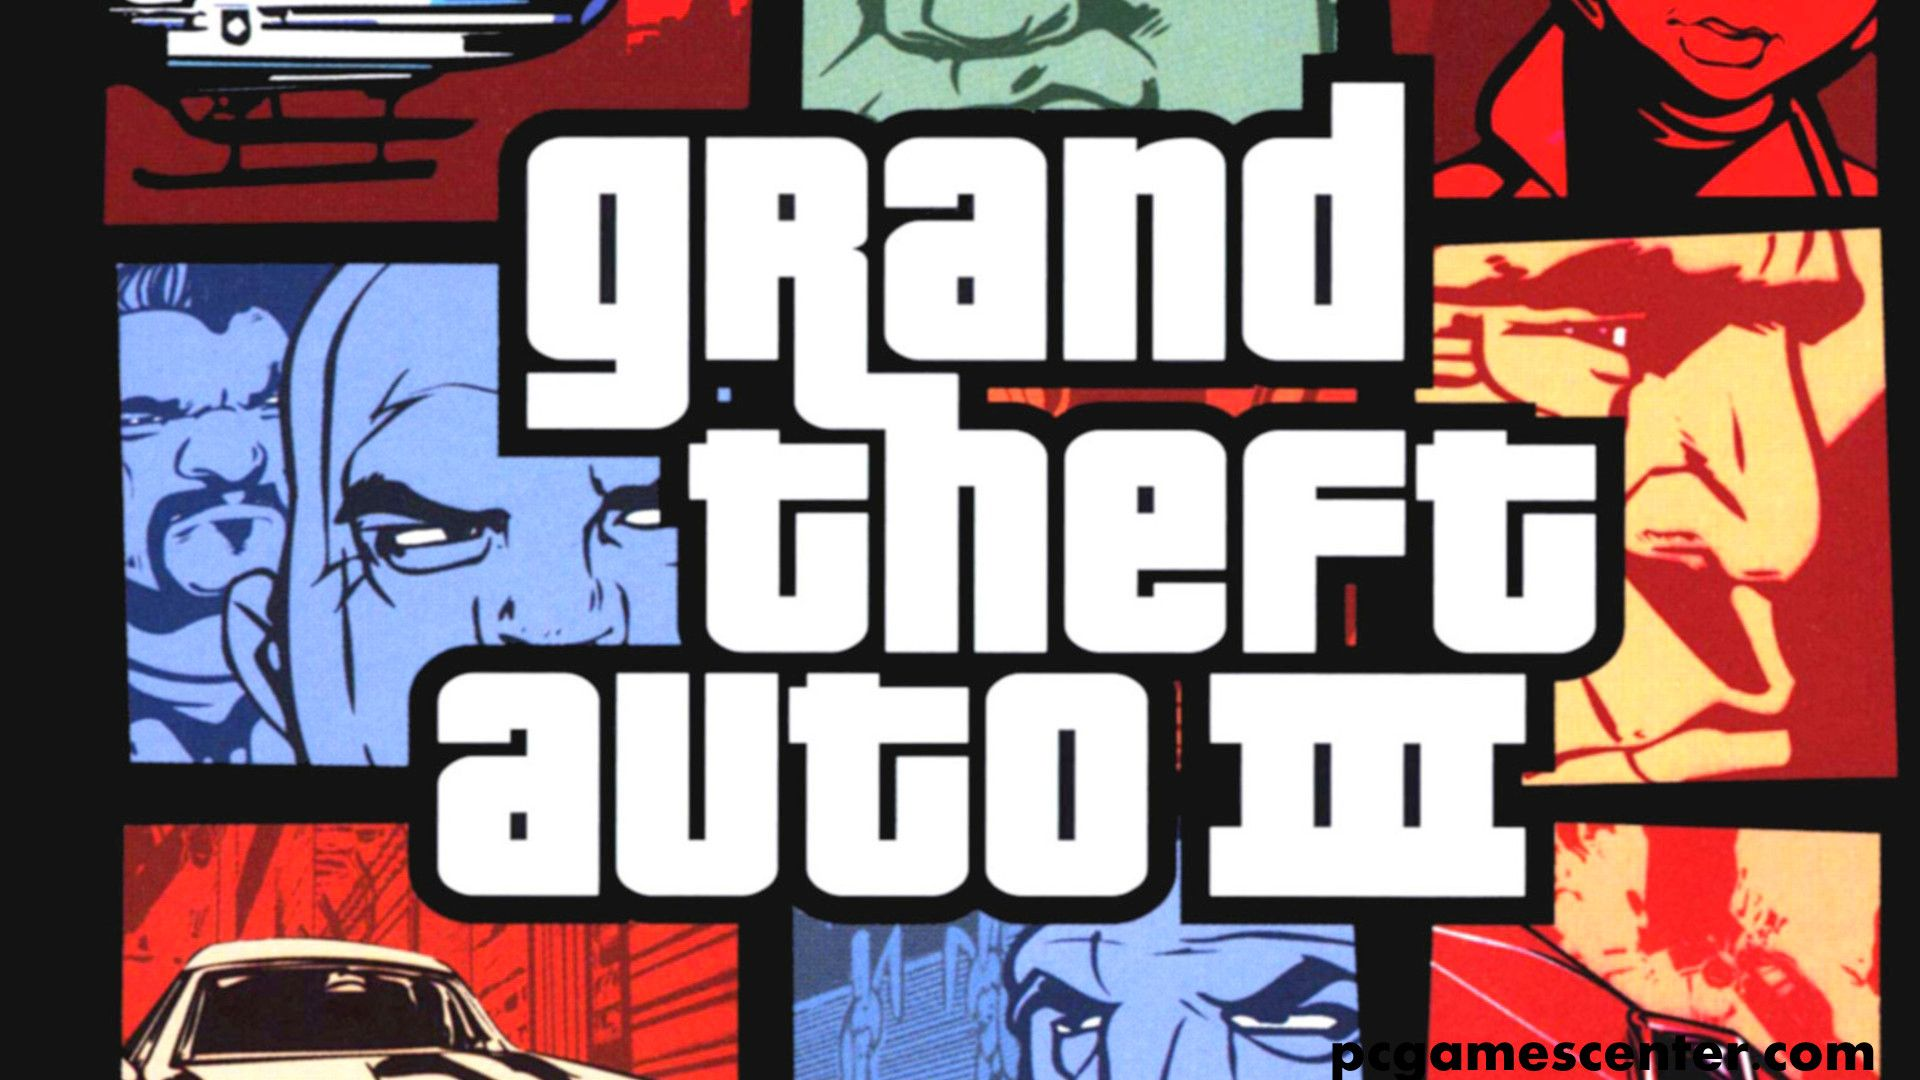 Grand Theft Auto San Andreas Pc Game Download Has Had A Smashing Success Receiving A Rating Of 4 5 Grand Theft Auto Grand Theft Auto 3 Grand Theft Auto Games